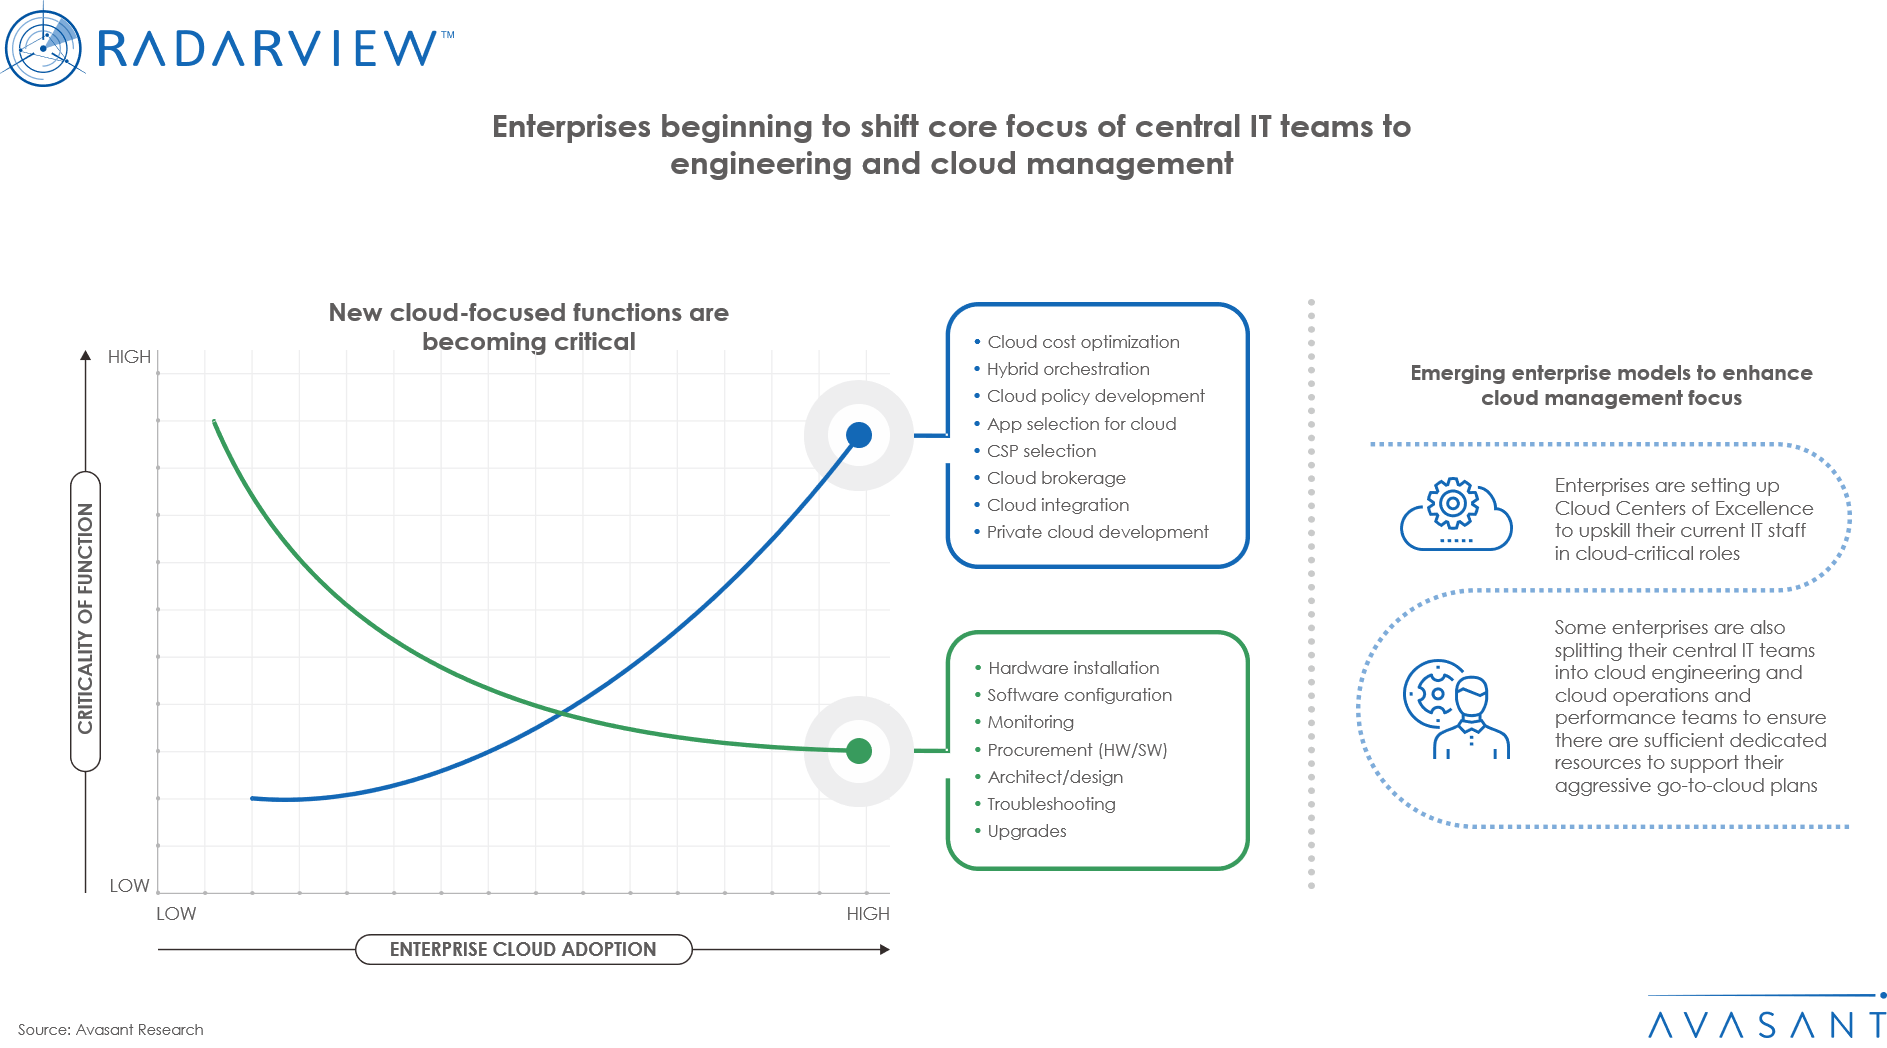 Enterprises beginning to shift core focus of central IT teams to engineering and cloud management